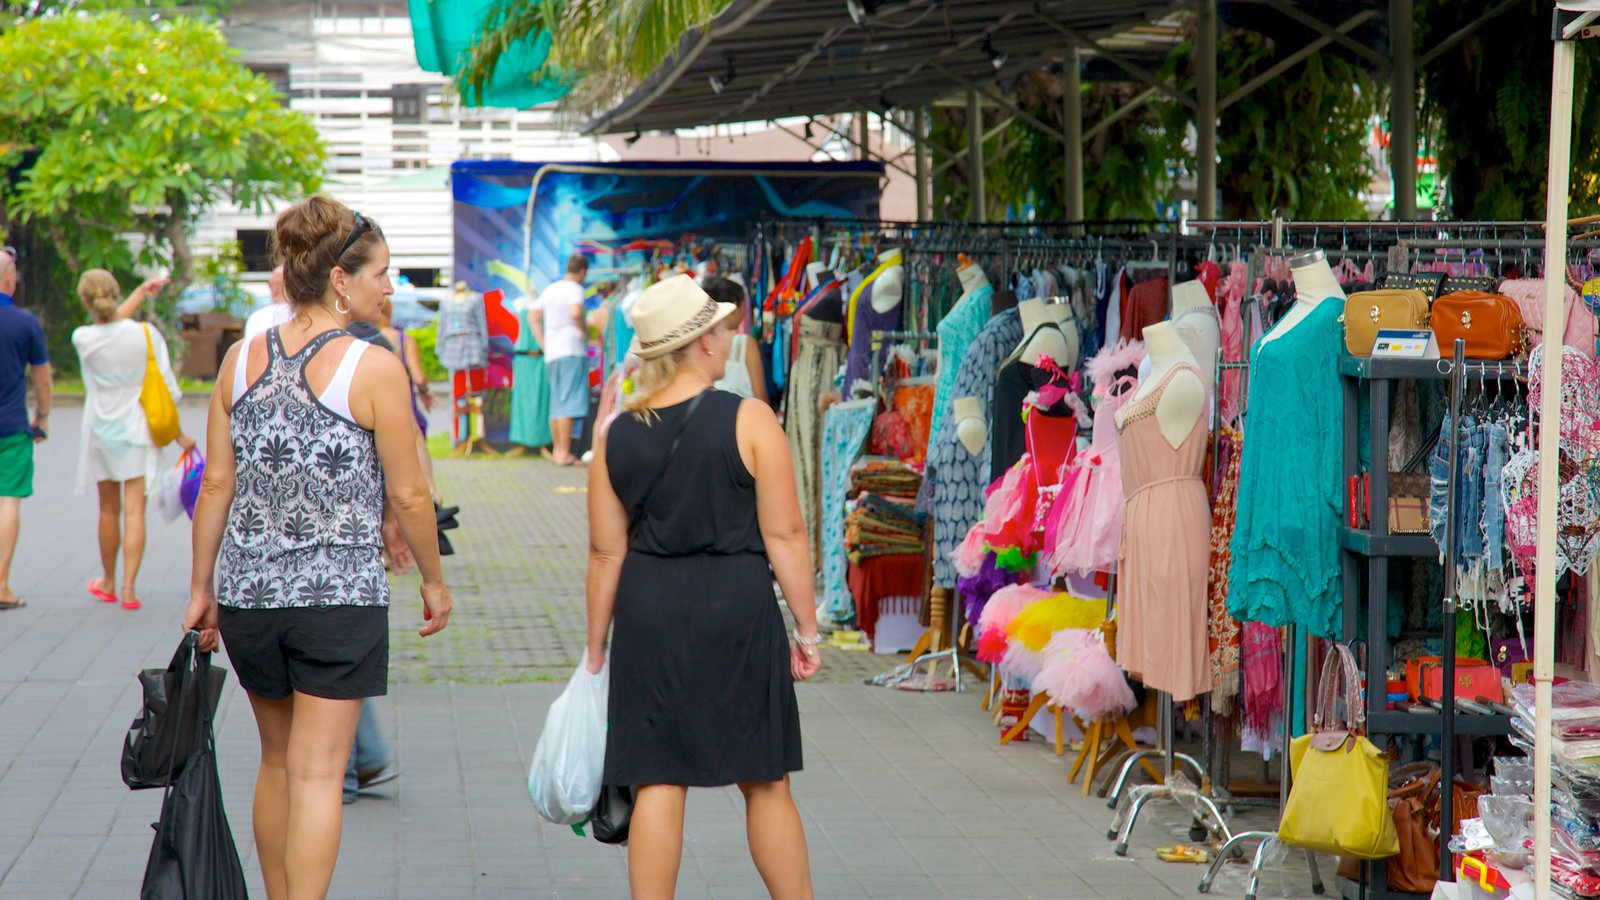 Shopping Pictures View Images Seminyak Square Showing Markets Street Scenes